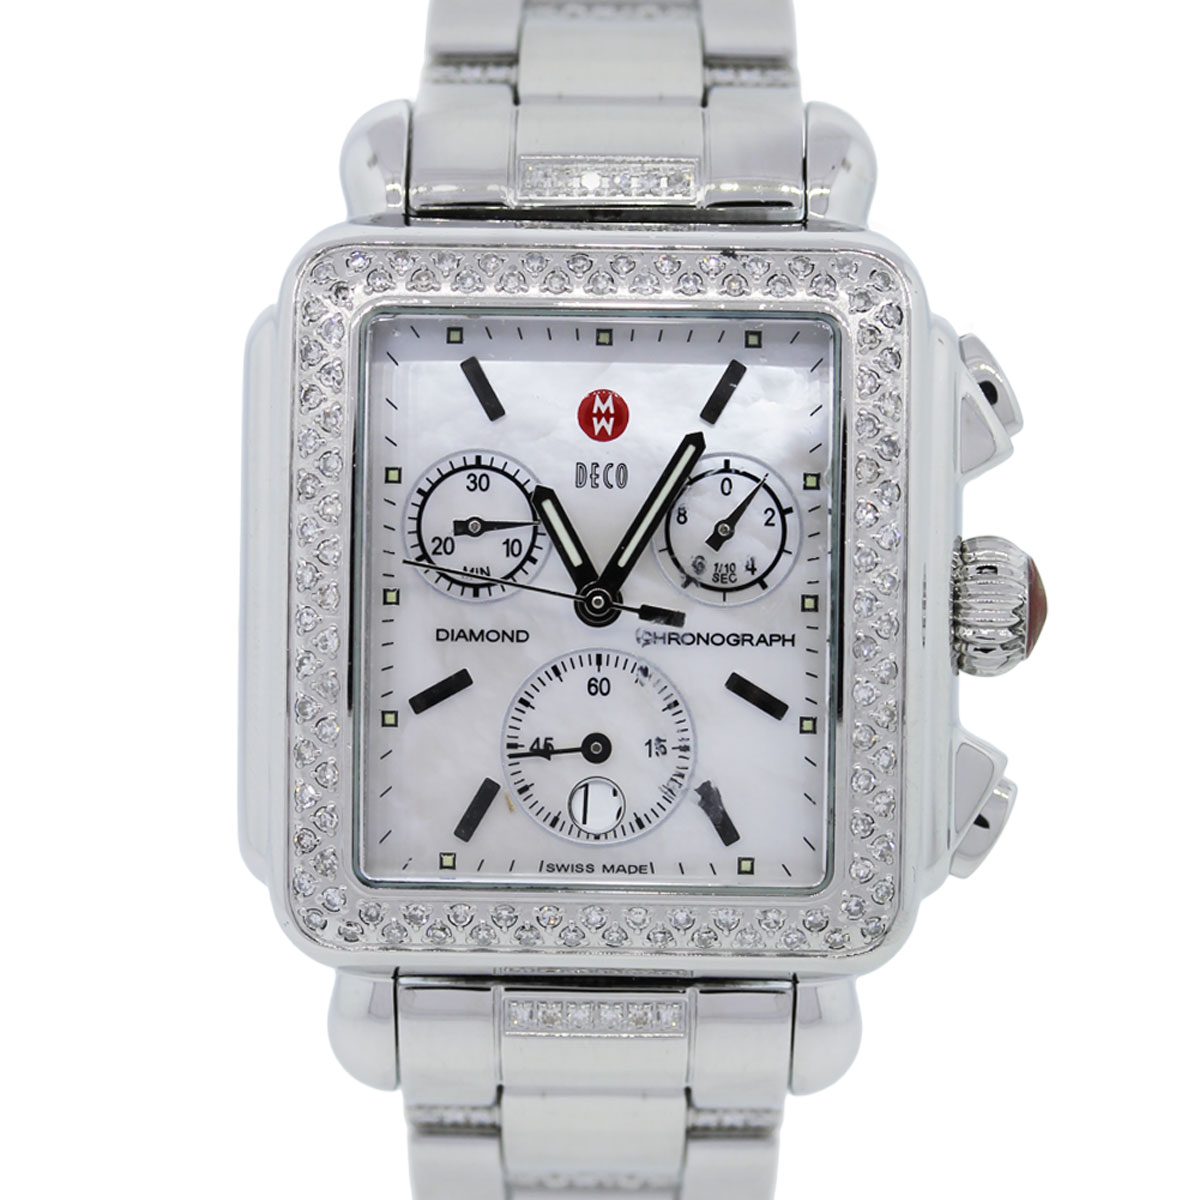 You are viewing this Michele Deco Mosaic Diamond Mother of Pearl Dial Watch!